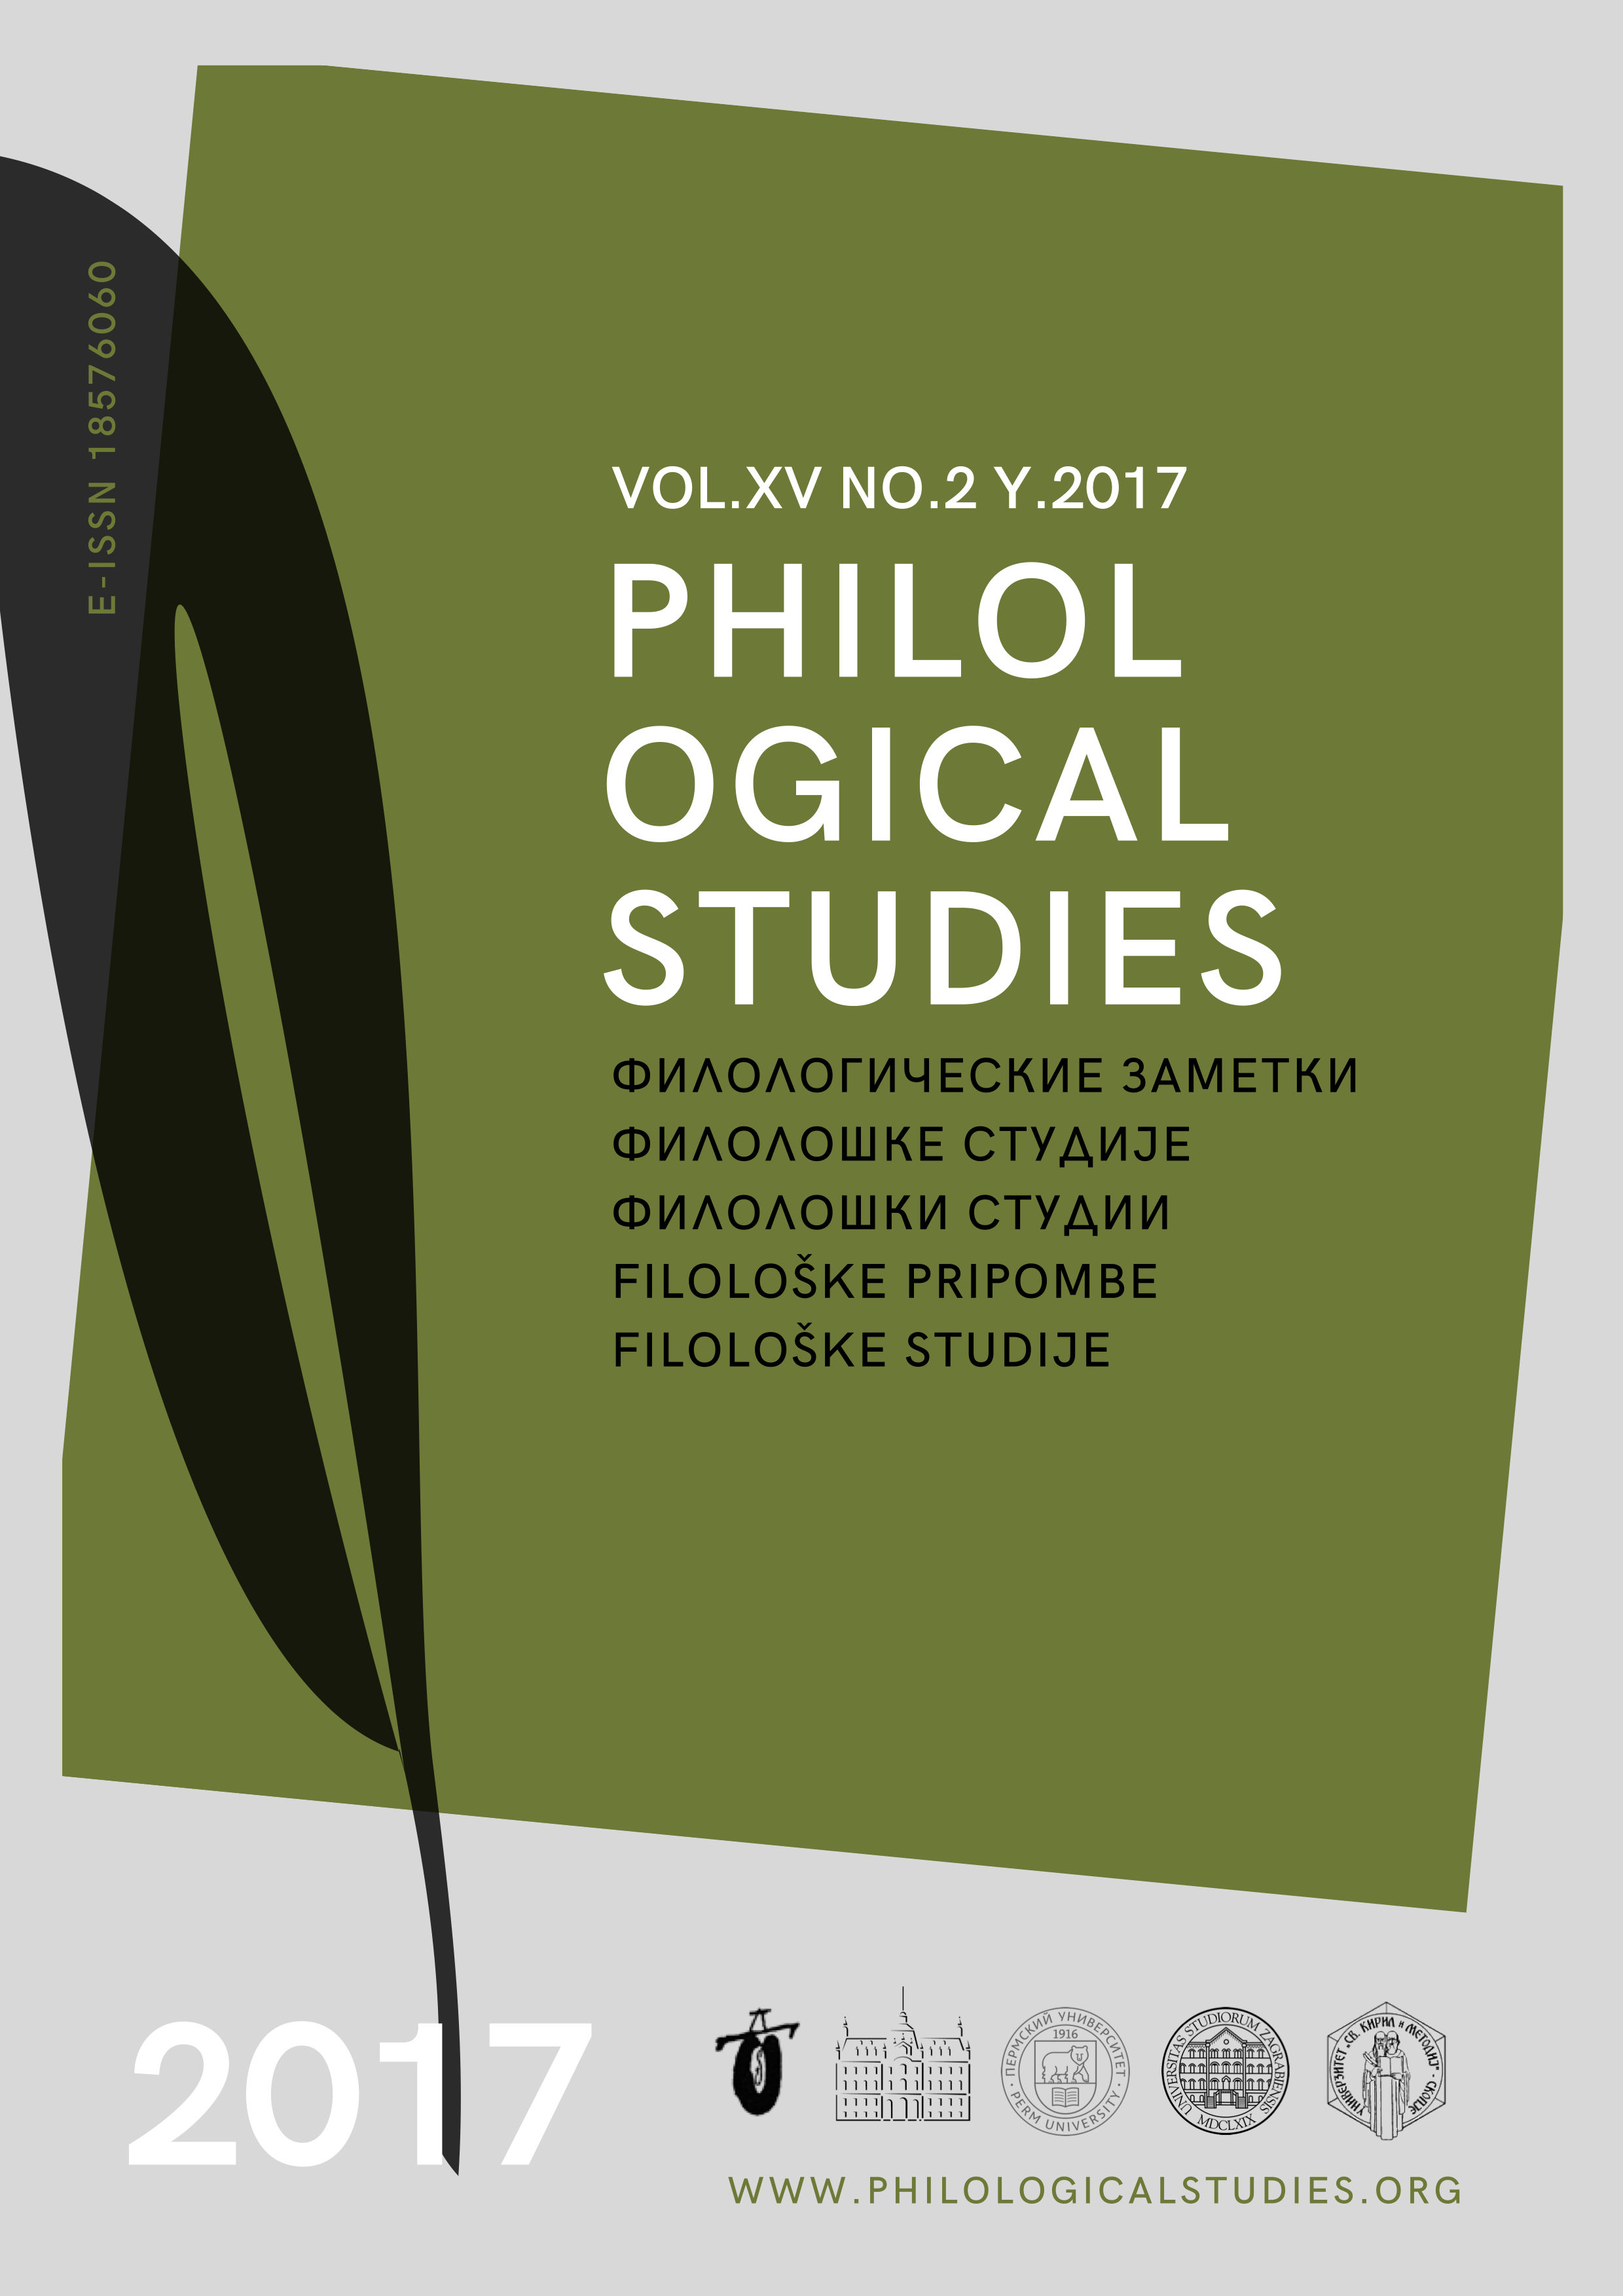 Philological Studies Vol.15 No.2 2017